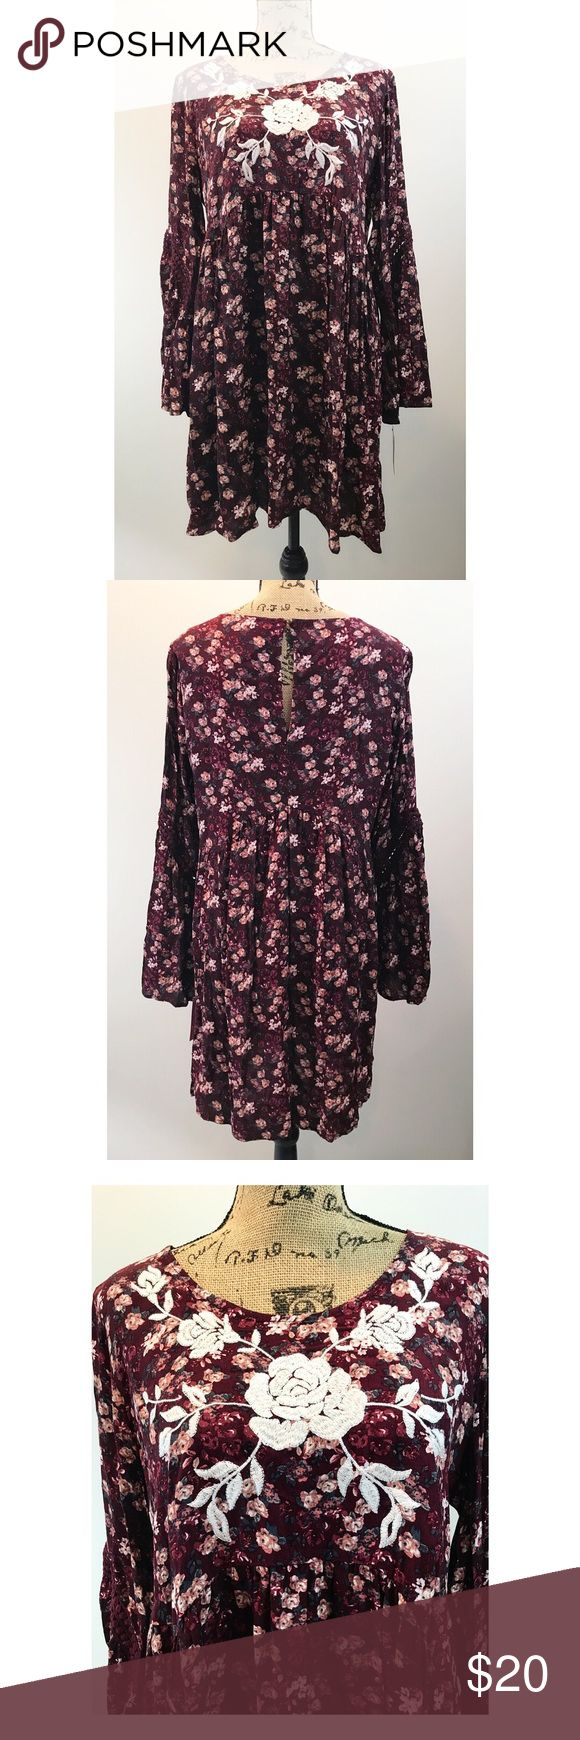 """NWT Xhilaration Plum Floral Dress NWT. Xhilaration. Xlarge. Also fits Large. Plum floral dress with embroidered flower detail. Key hole opening in back. Has crochet lace on the sleeves. B: 22.5"""", W: 23"""", L: 35.5"""" Xhilaration Dresses Long Sleeve"""